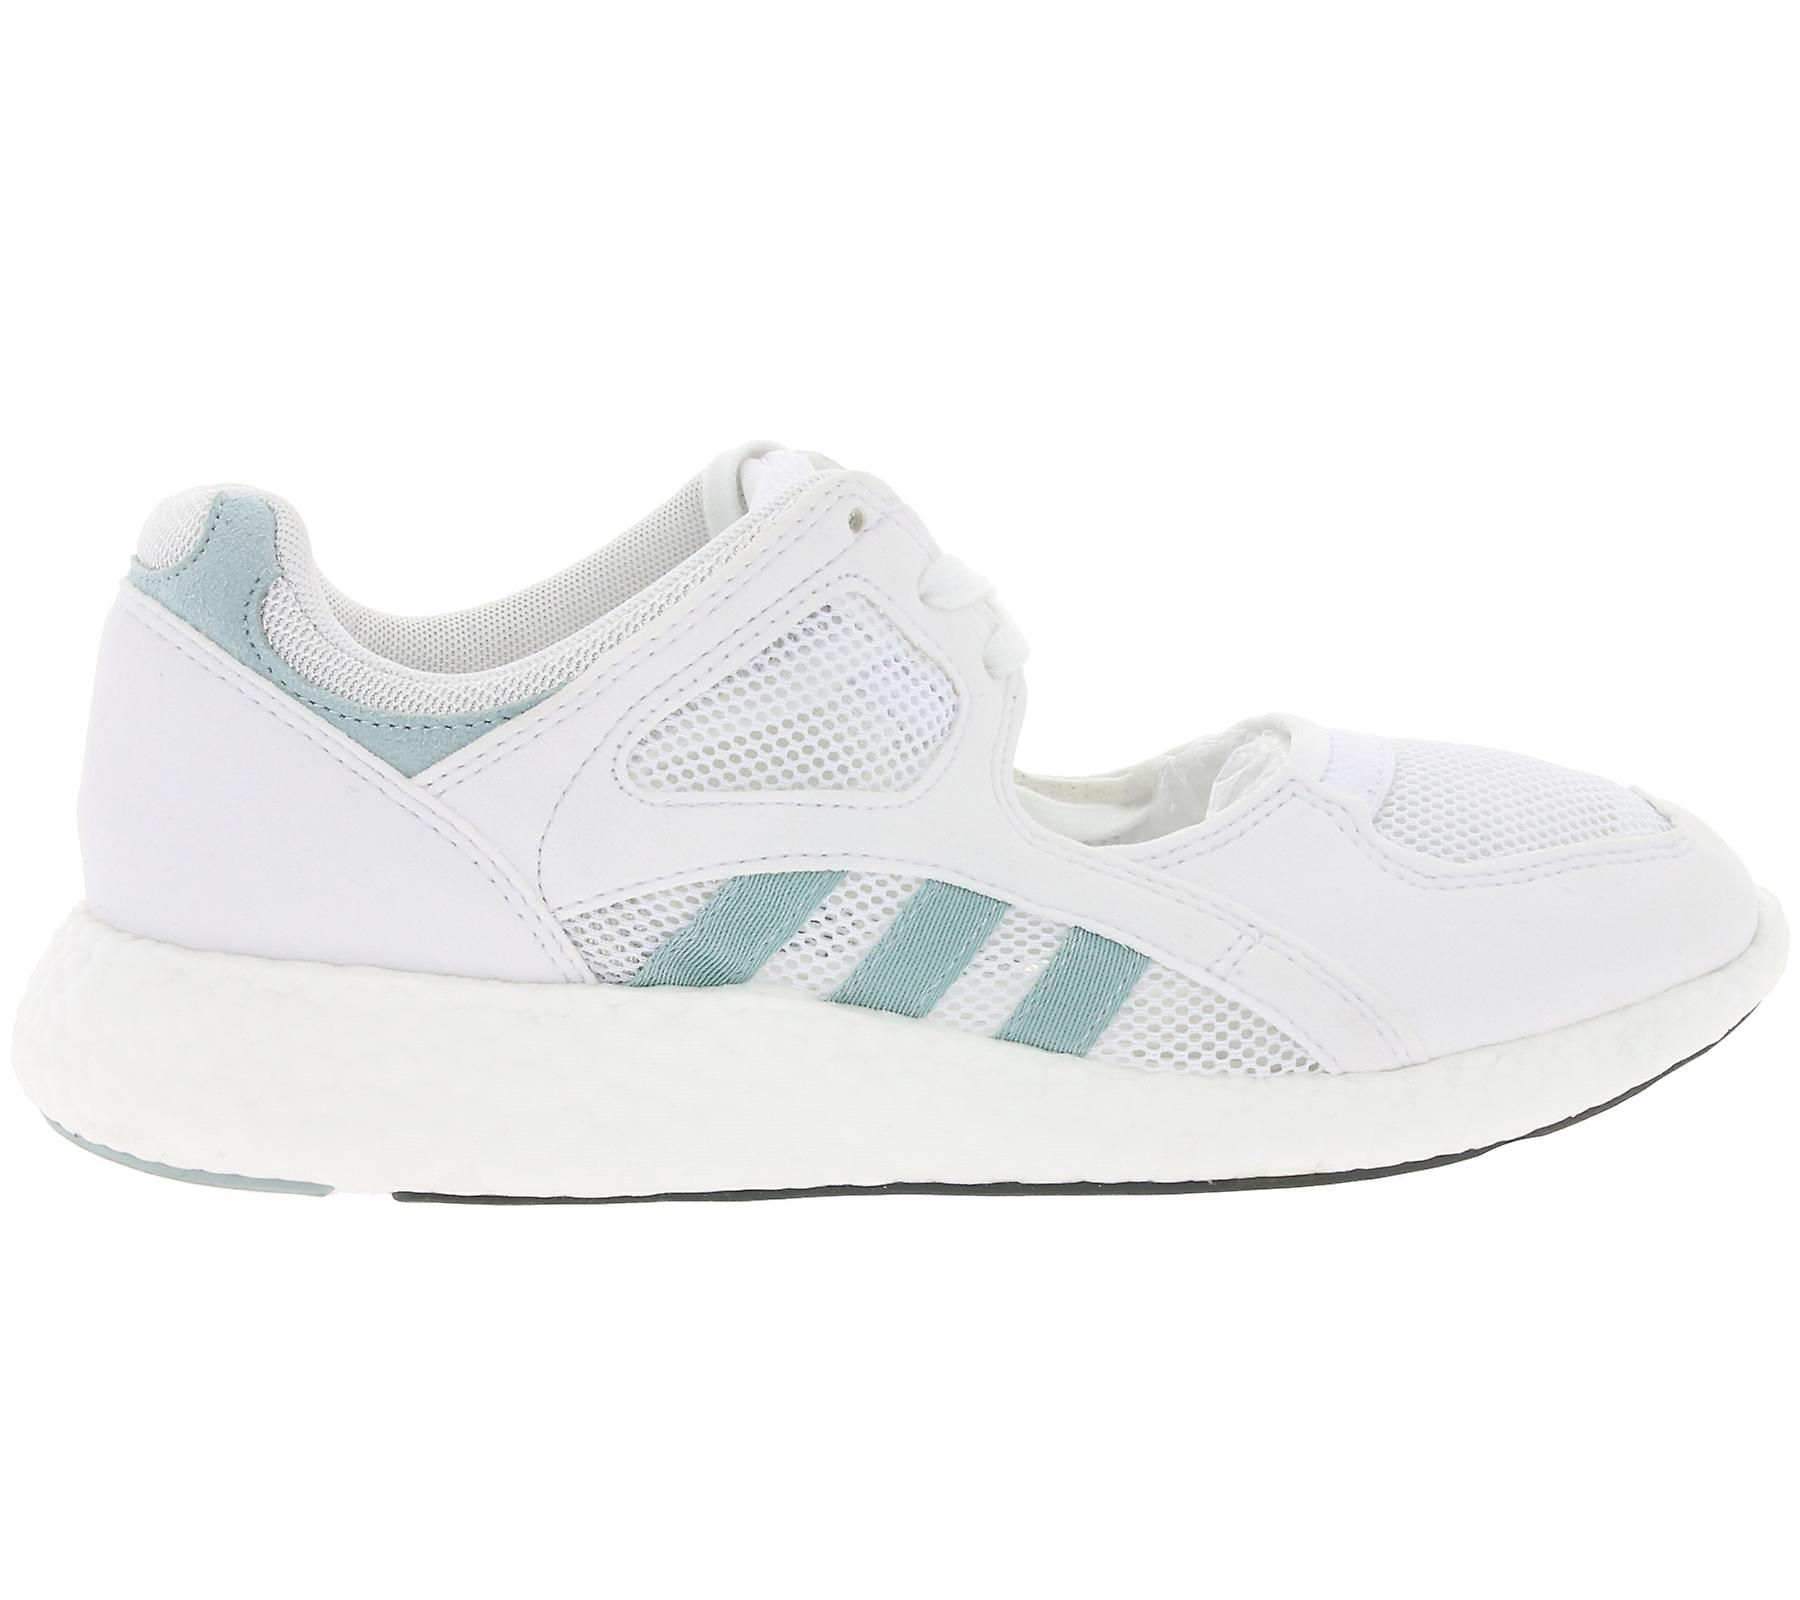 buy online a3663 bb491 adidas originals equipment racing 9116 W boost womens running shoes white  BA7570